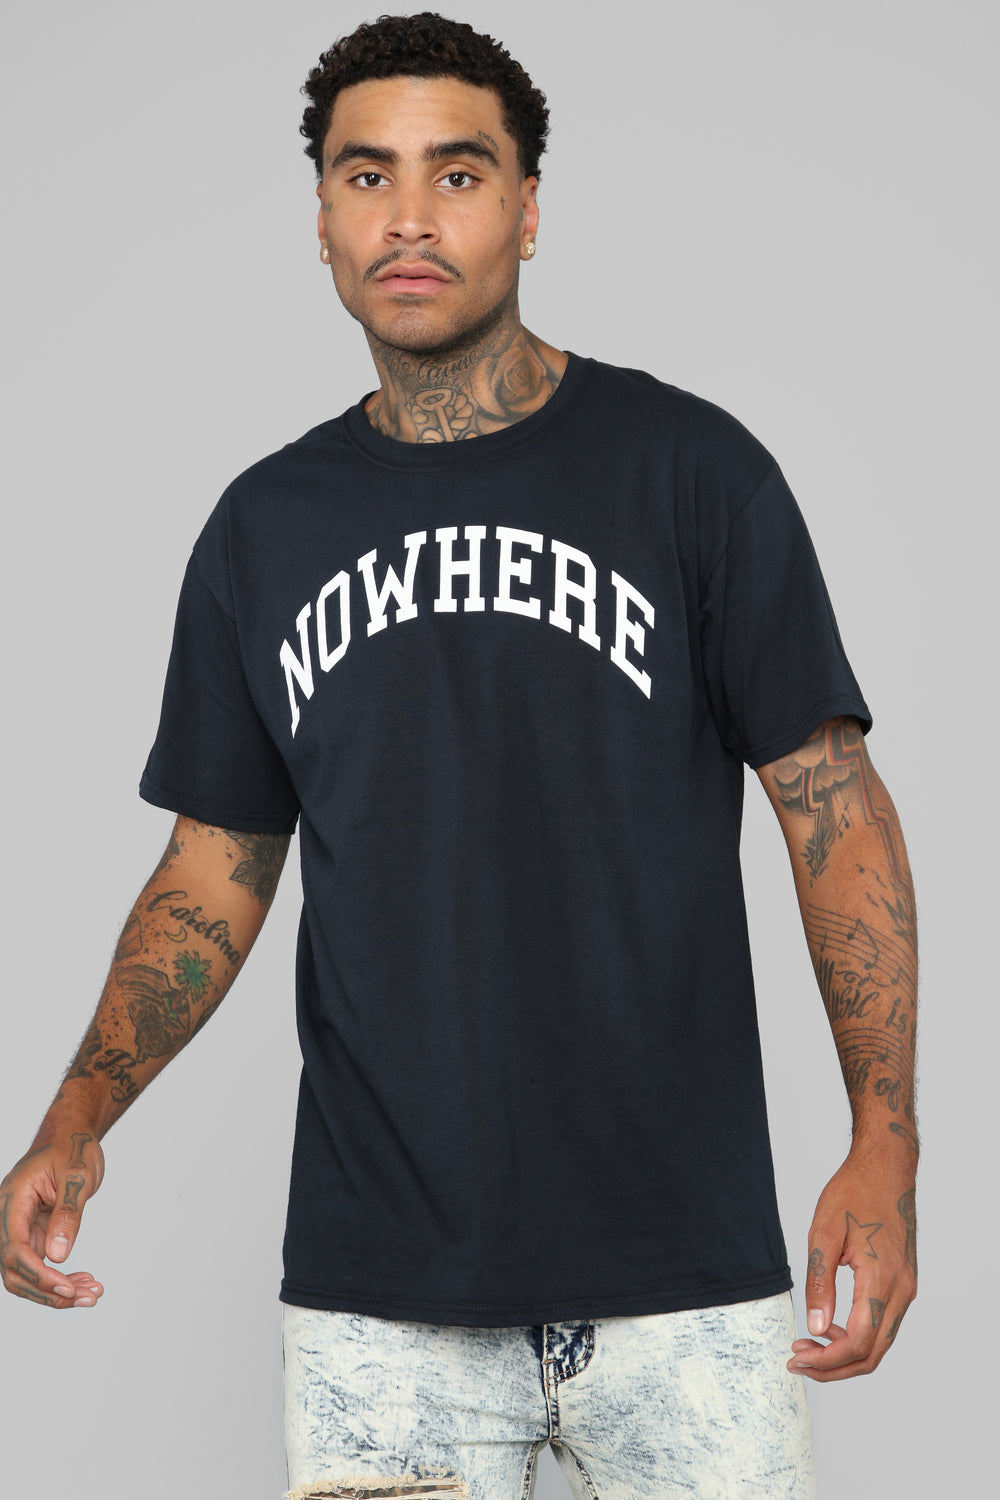 Nowhere Tee - Black